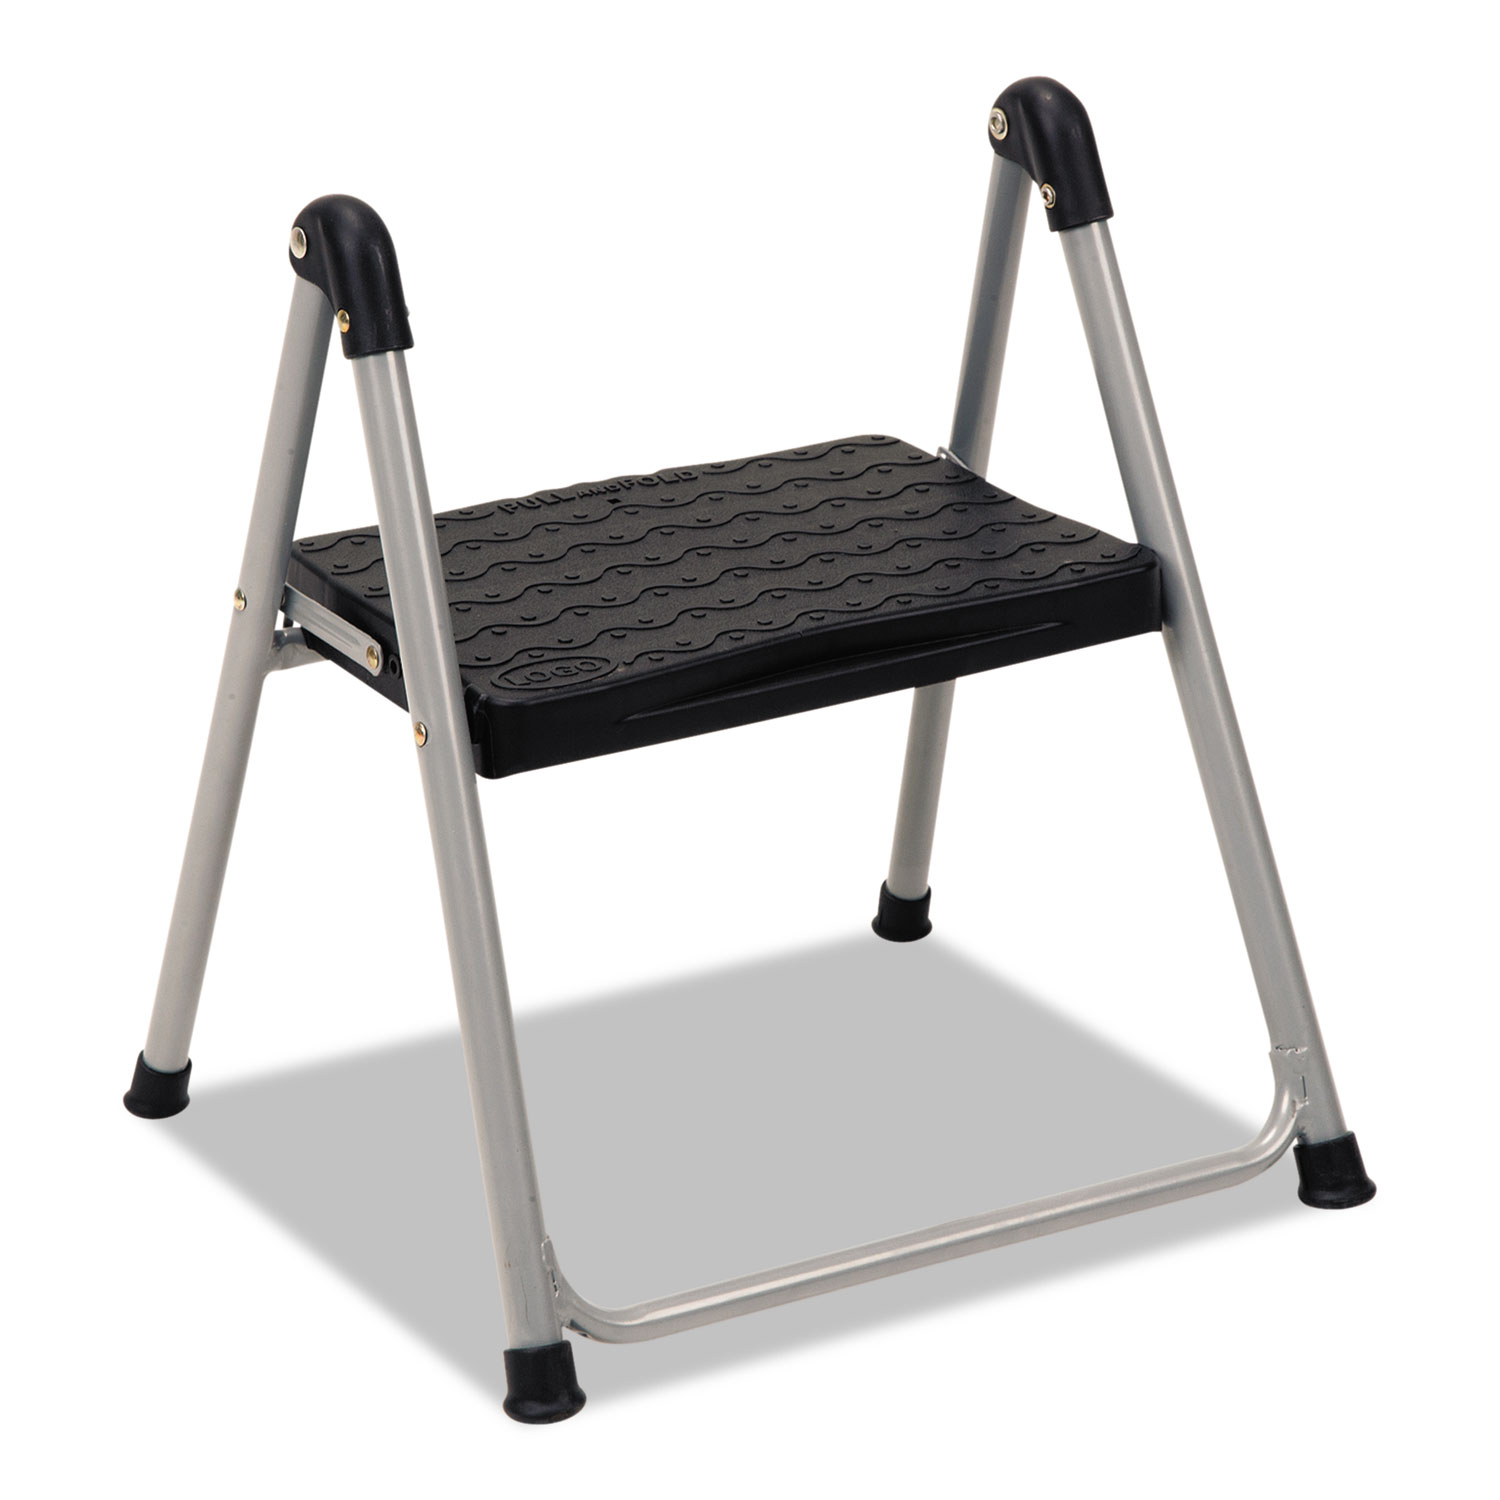 Magnificent Folding Step Stool 1 Step 200 Lb Capacity 9 9 Working Height Platinum Black Creativecarmelina Interior Chair Design Creativecarmelinacom